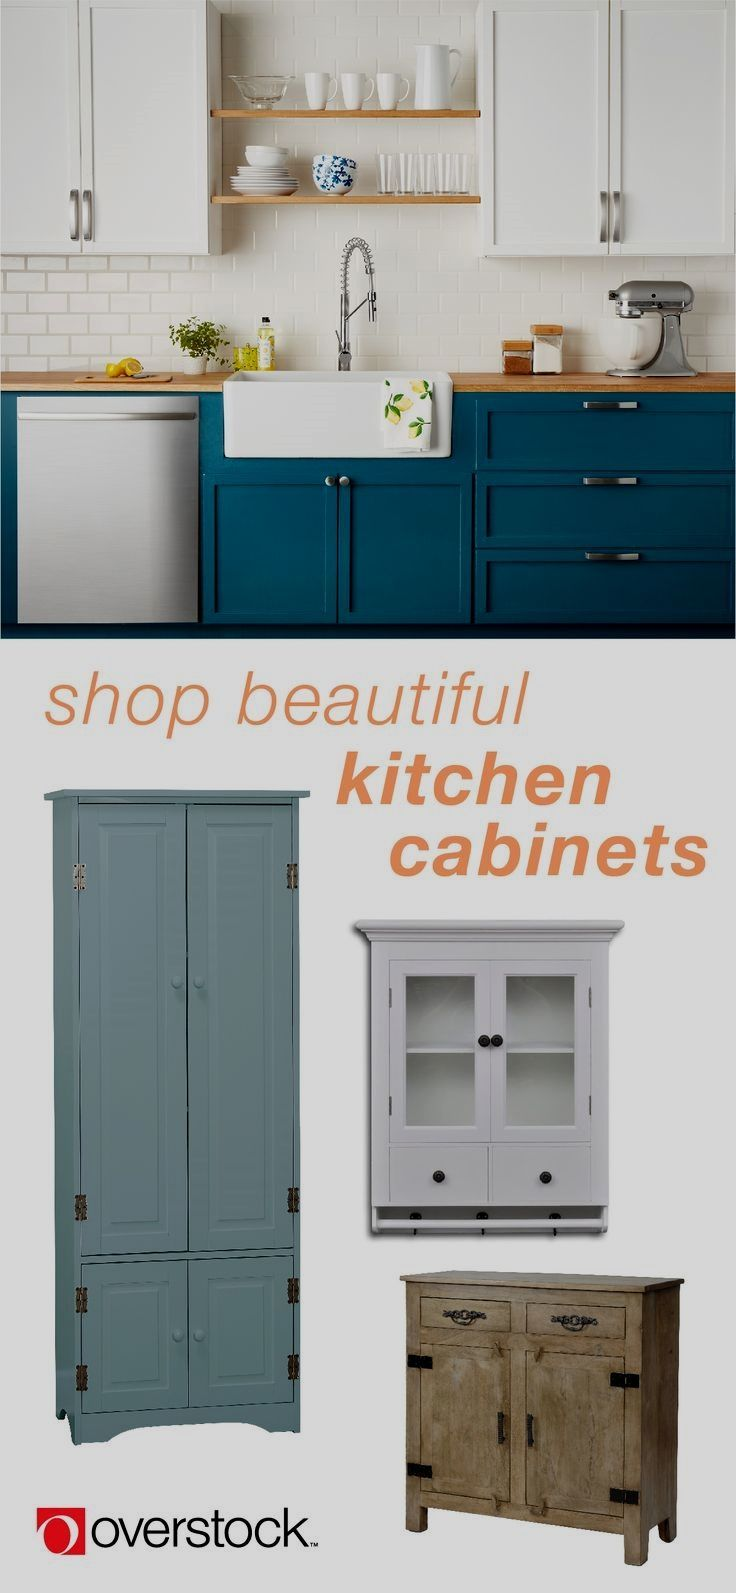 pics of kitchen cabinet designs singapore and vintage white metal rh in pinterest com